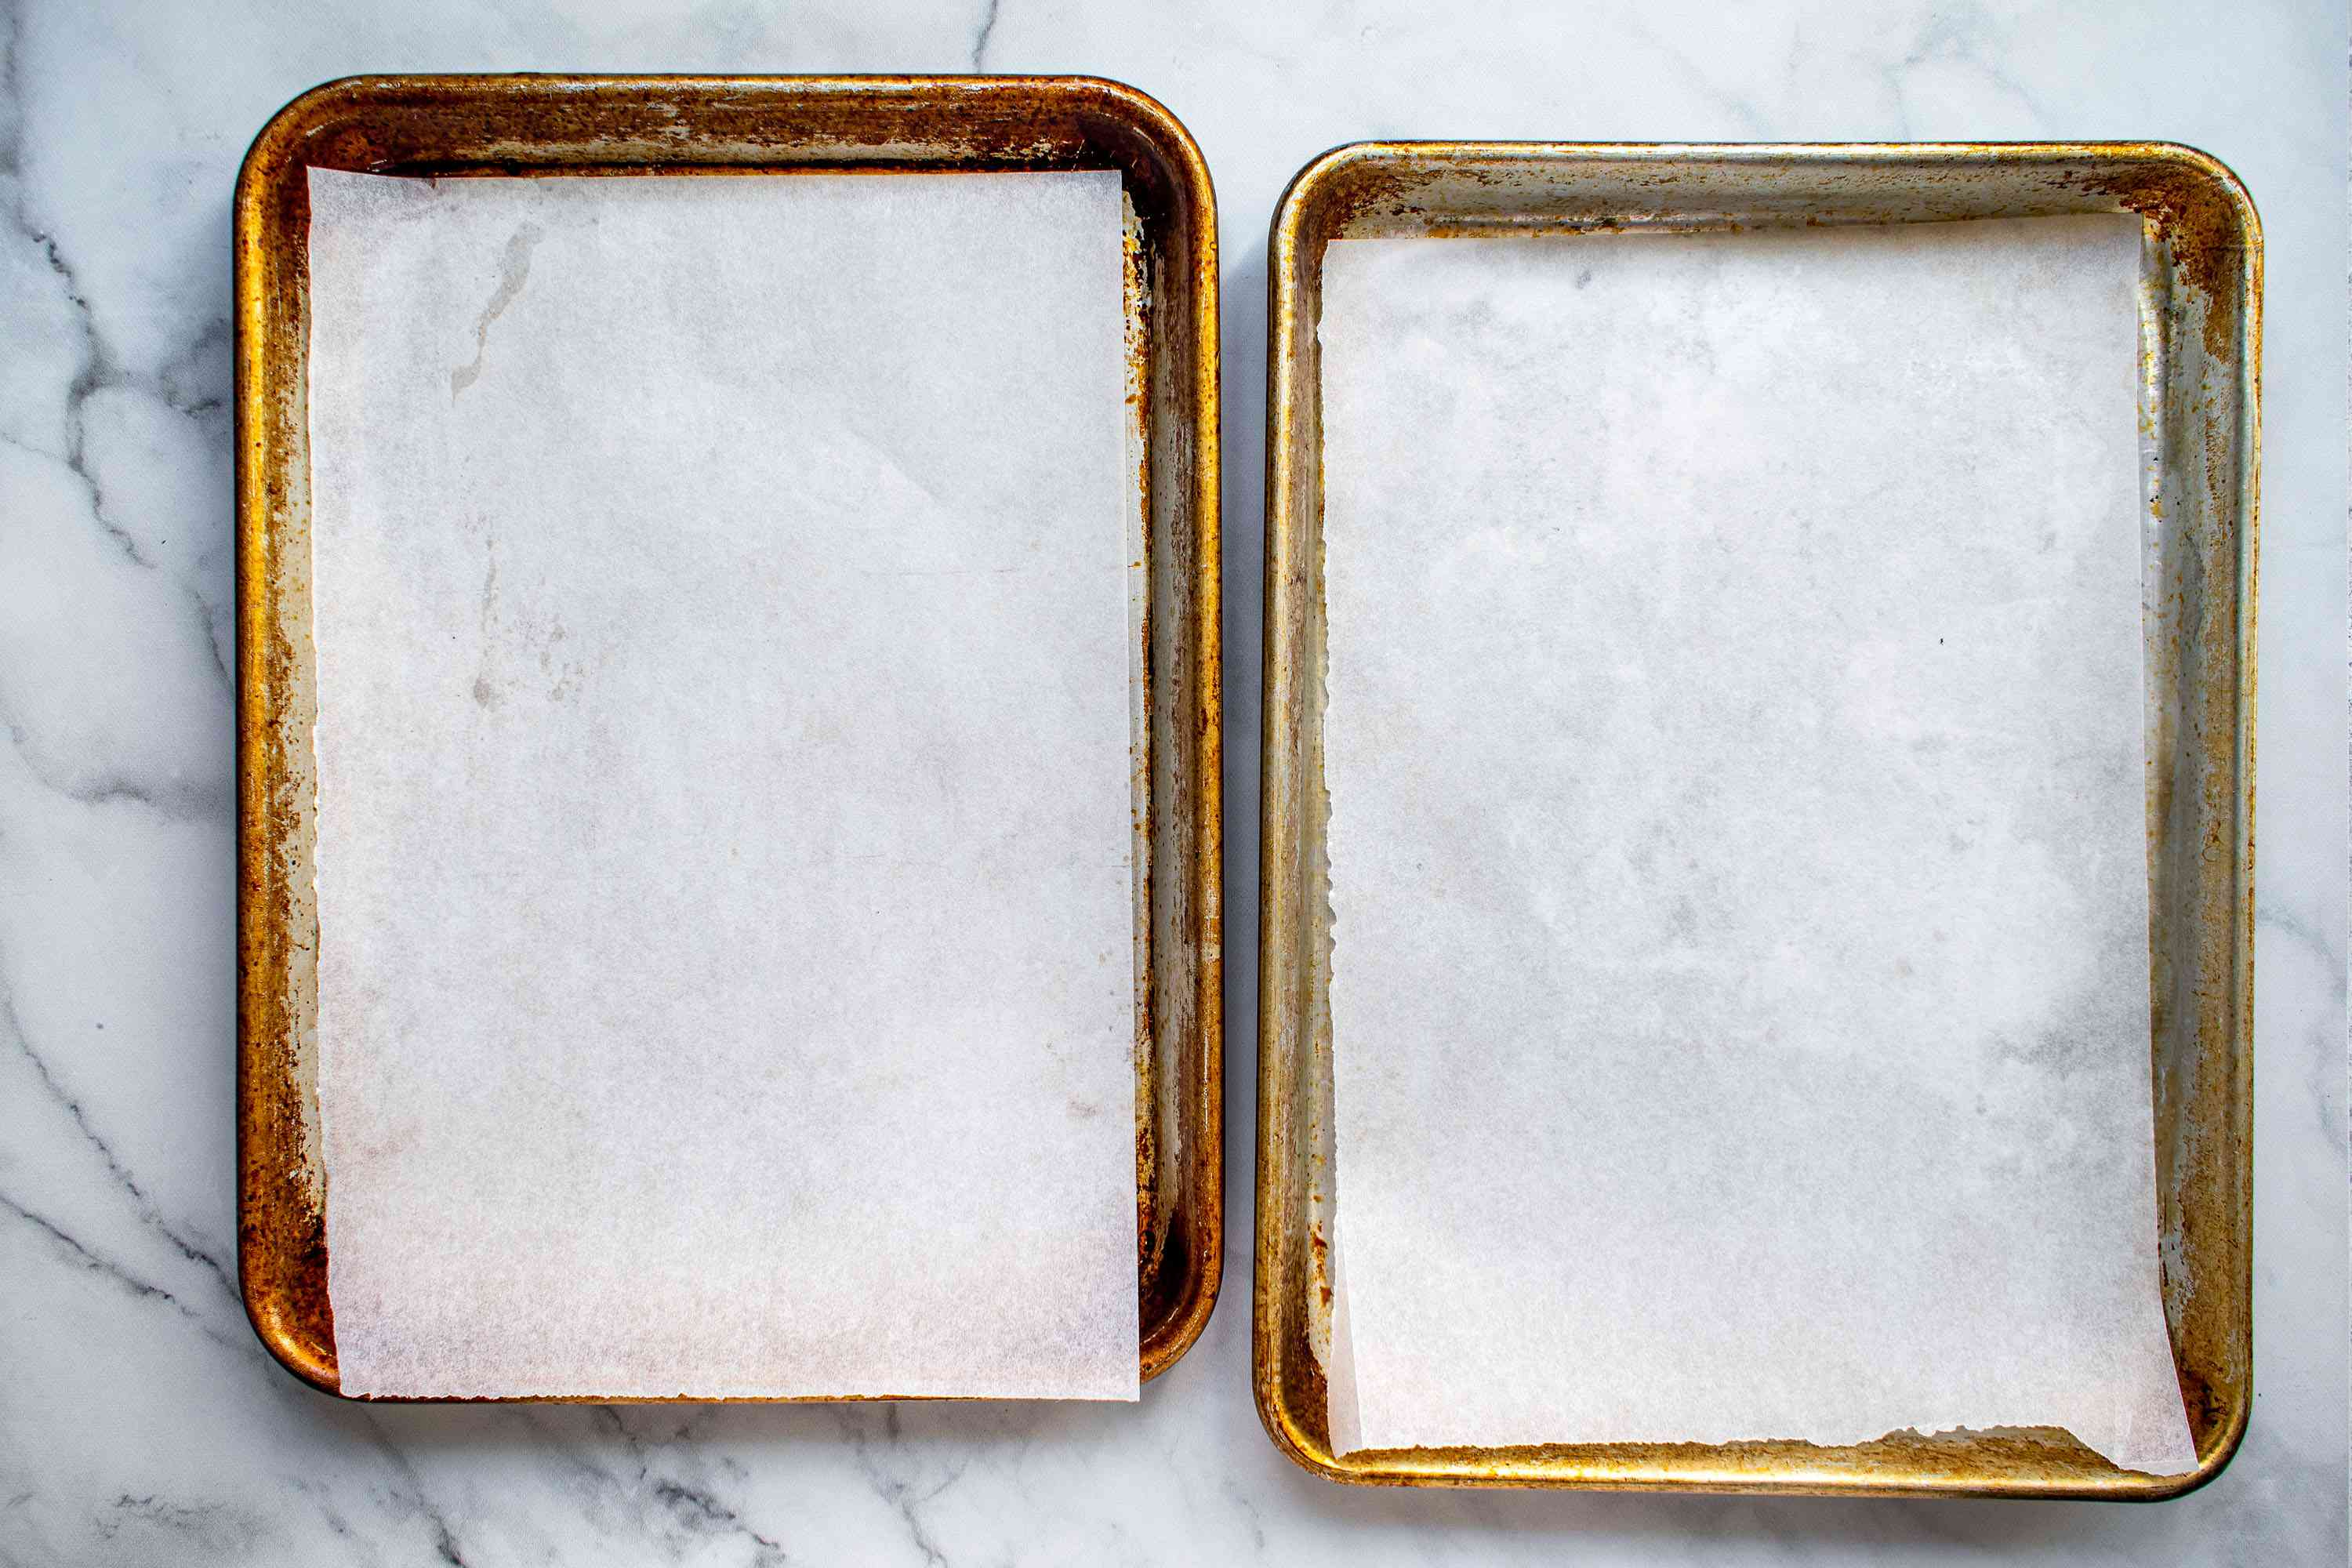 Baking sheets lined with parchment paper